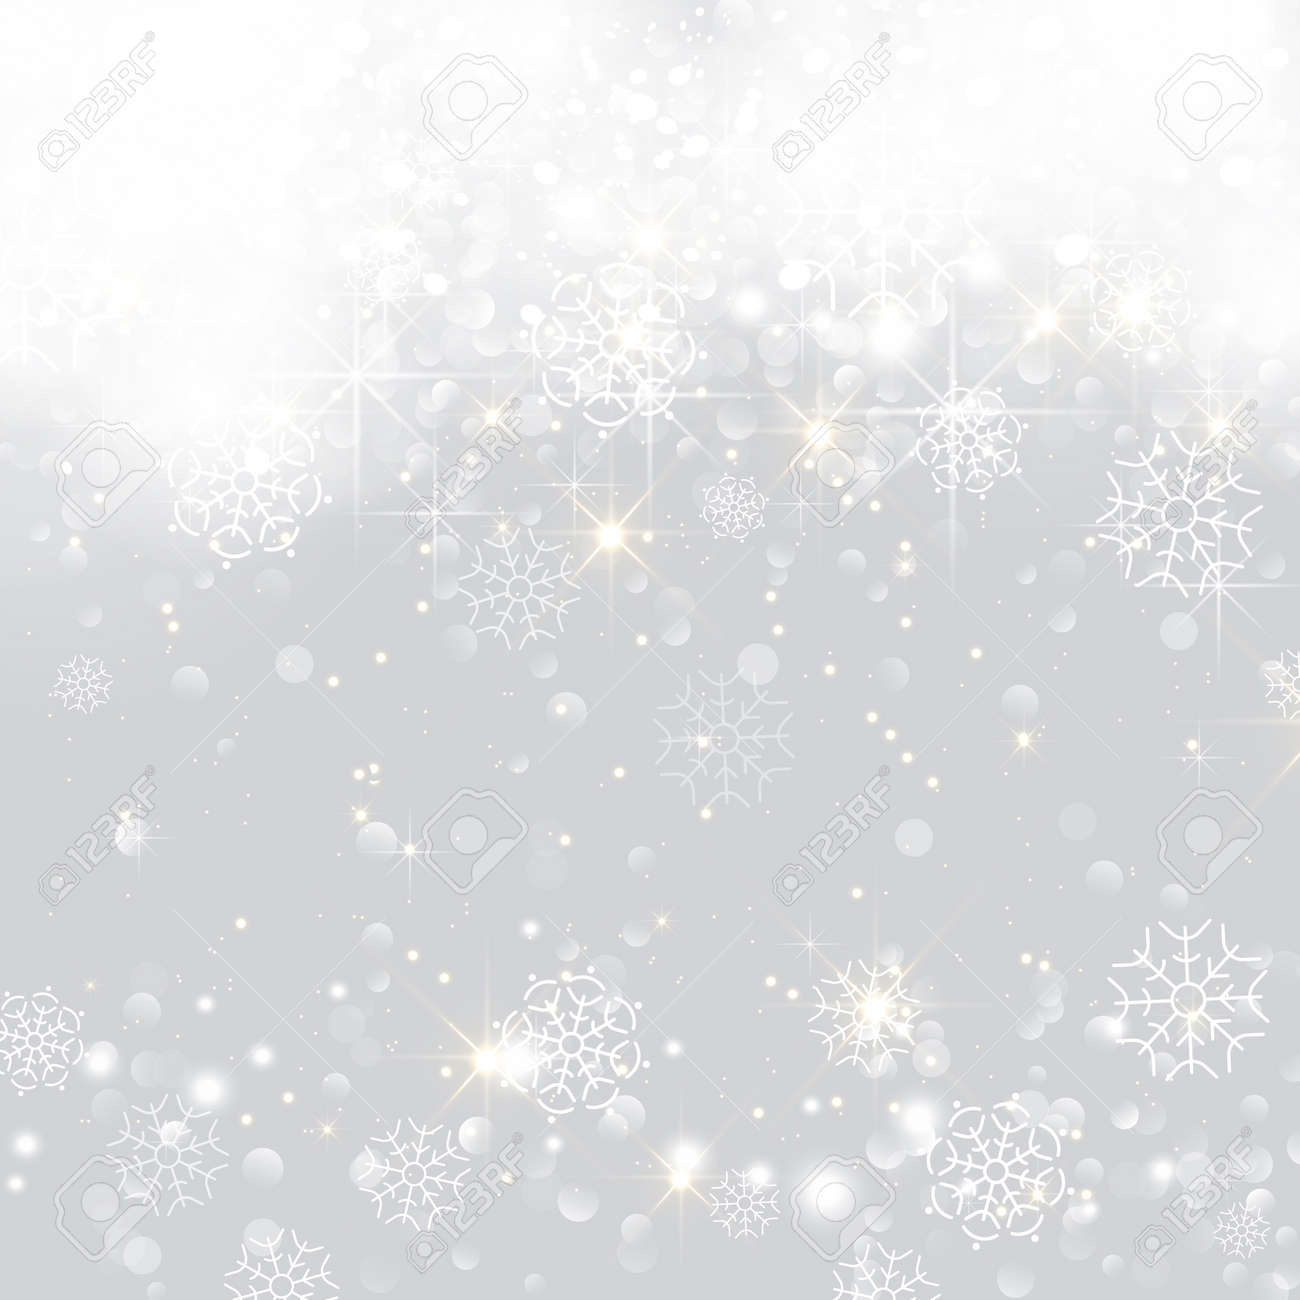 Glittery lights silver abstract Christmas background. - 158816413